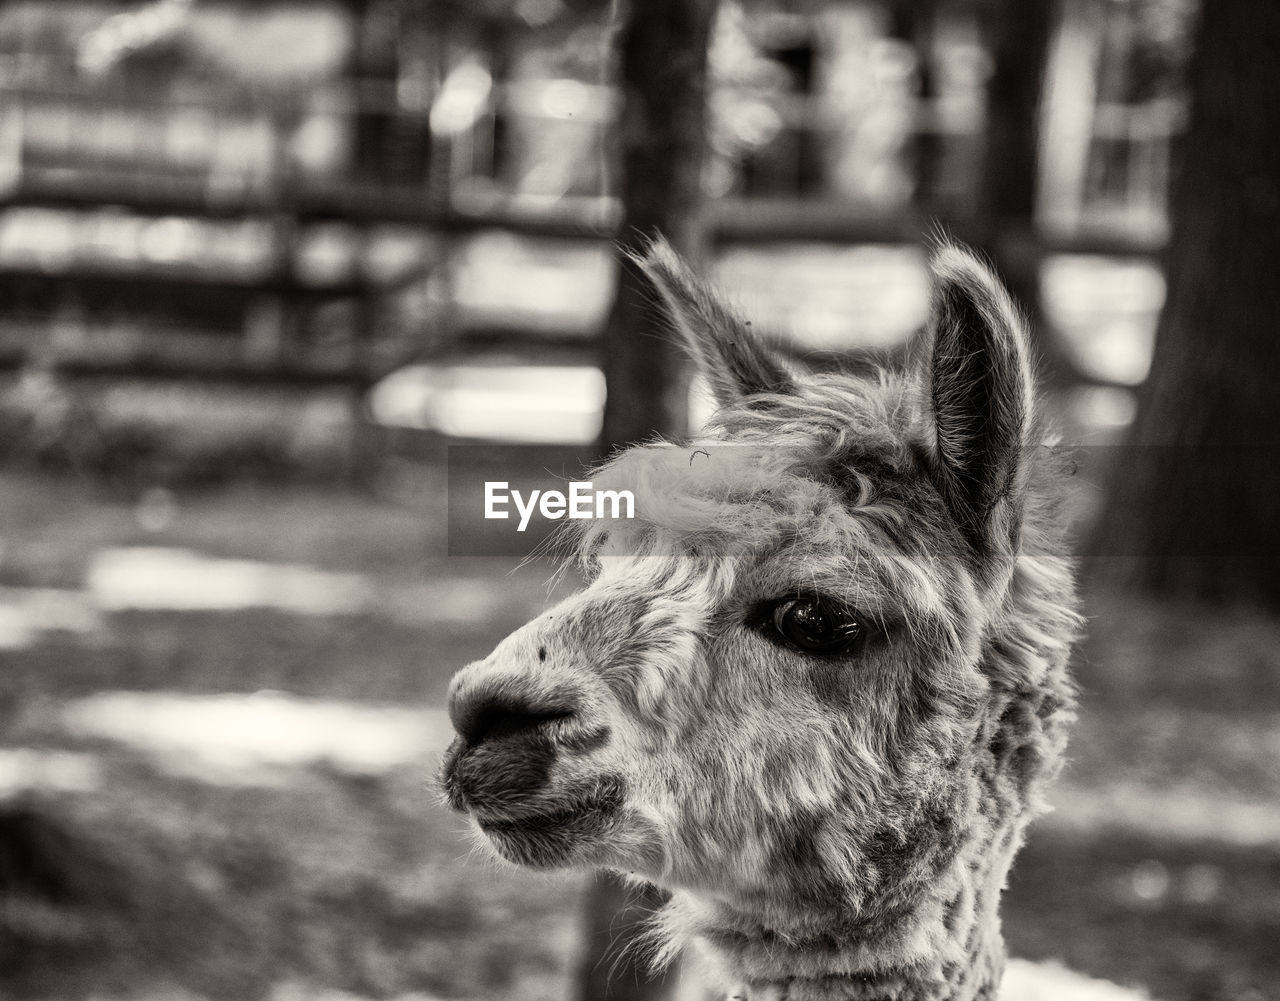 one animal, animal themes, focus on foreground, mammal, domestic animals, domestic, animal, pets, vertebrate, animal body part, close-up, day, animal head, looking away, looking, no people, animal hair, dog, canine, portrait